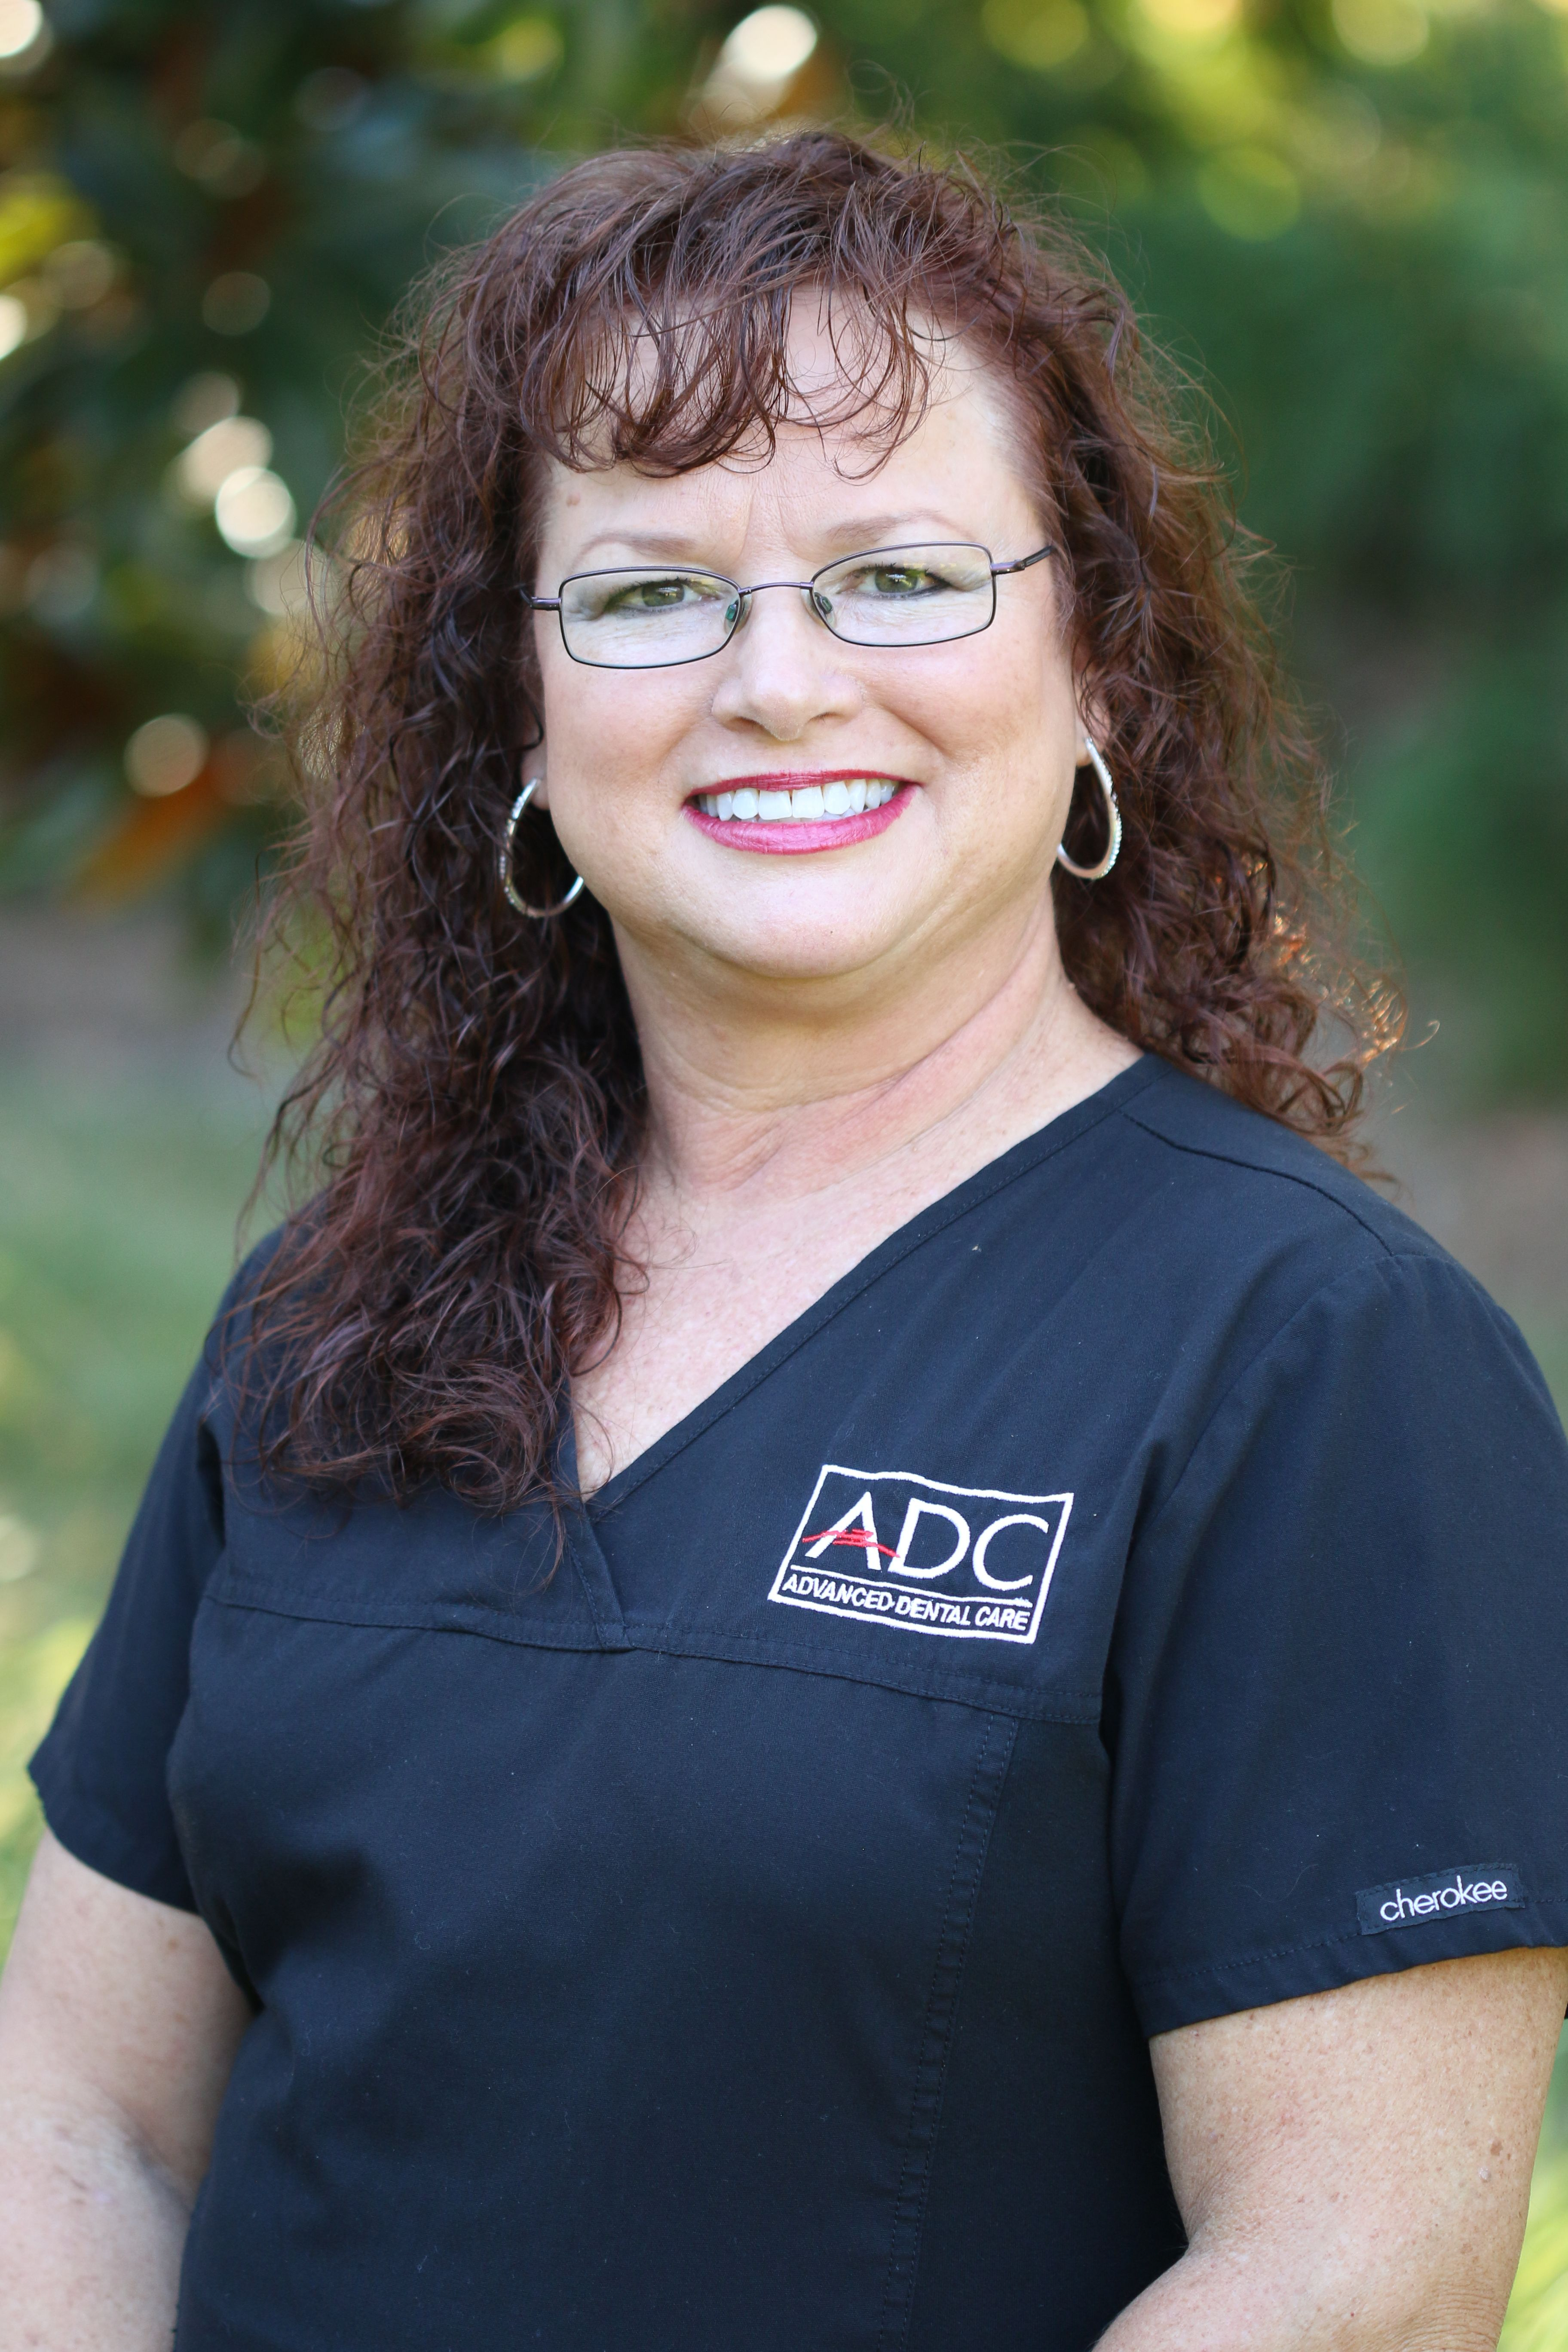 Meet the Staff of Advanced Dental Care